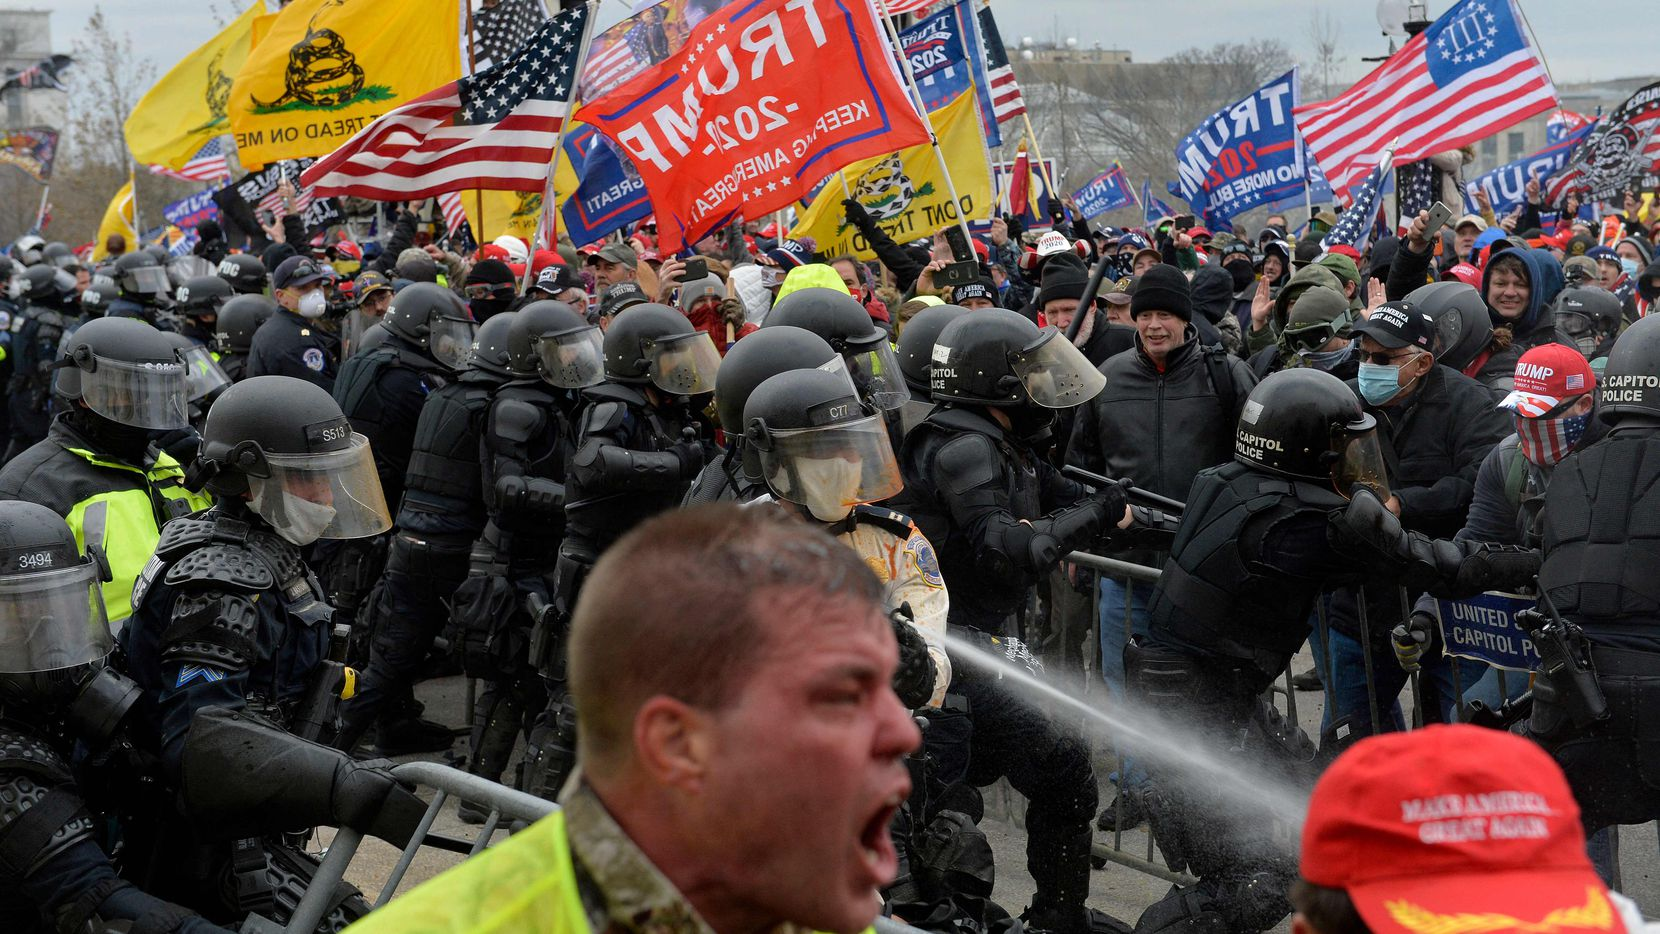 Trump supporters clash with police and security forces as people try to storm the Capitol on Jan. 6, 2021.